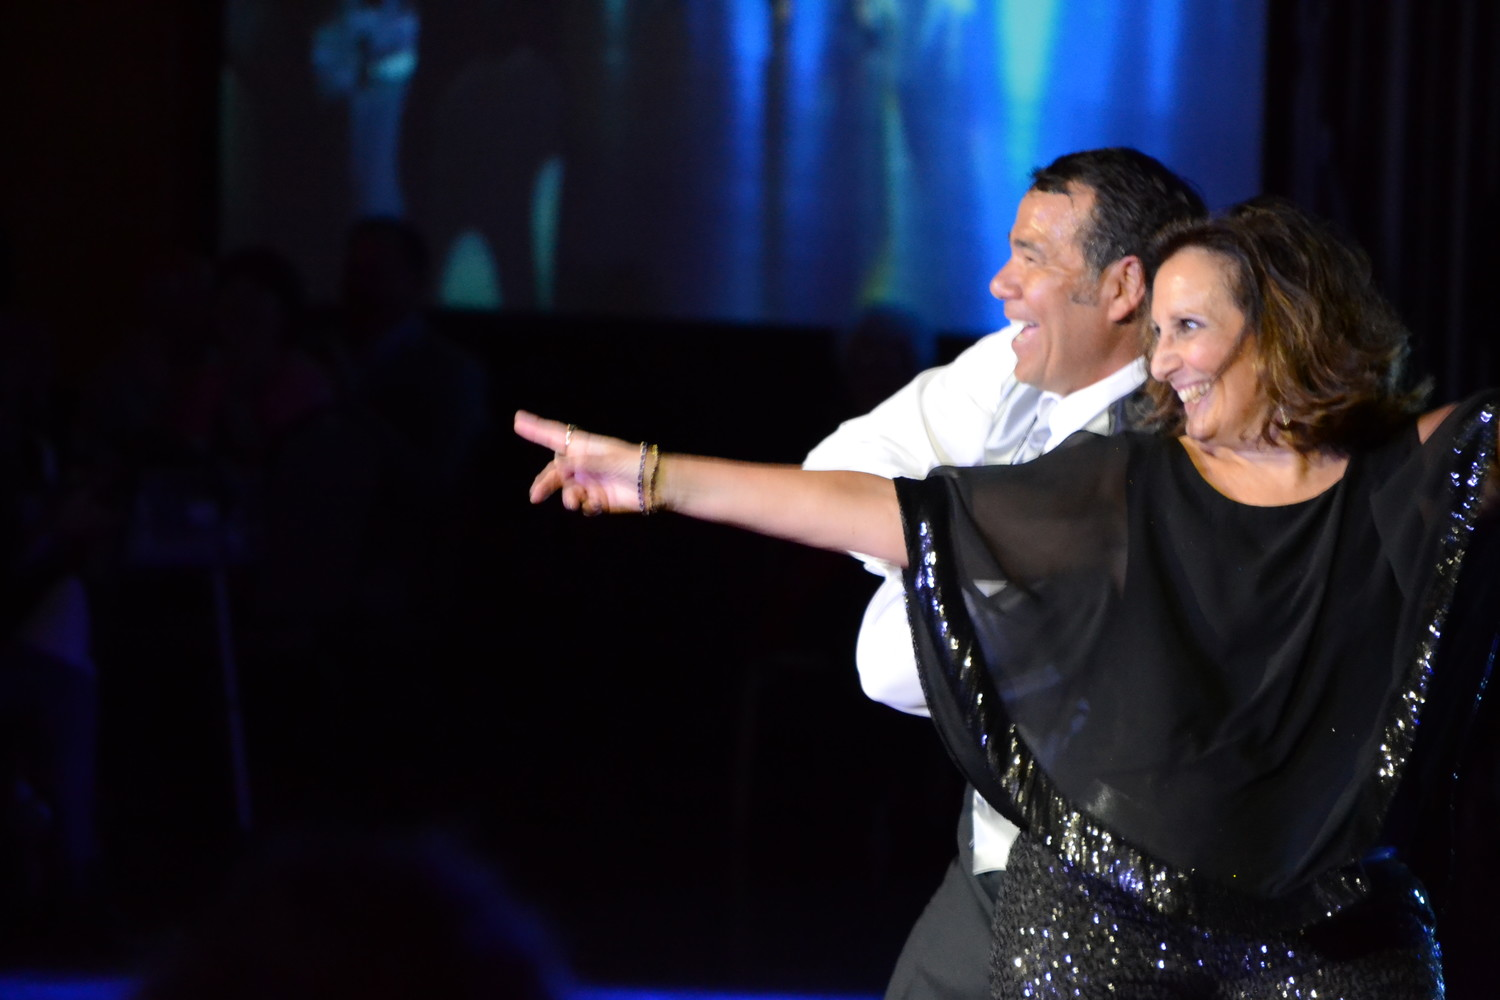 Doug Schobel of Delta Dental and Deborah O'Donnell started the show off with a pop infused, explosively energetic opening number incorporating many popular Top 40 hits spanning the decades.